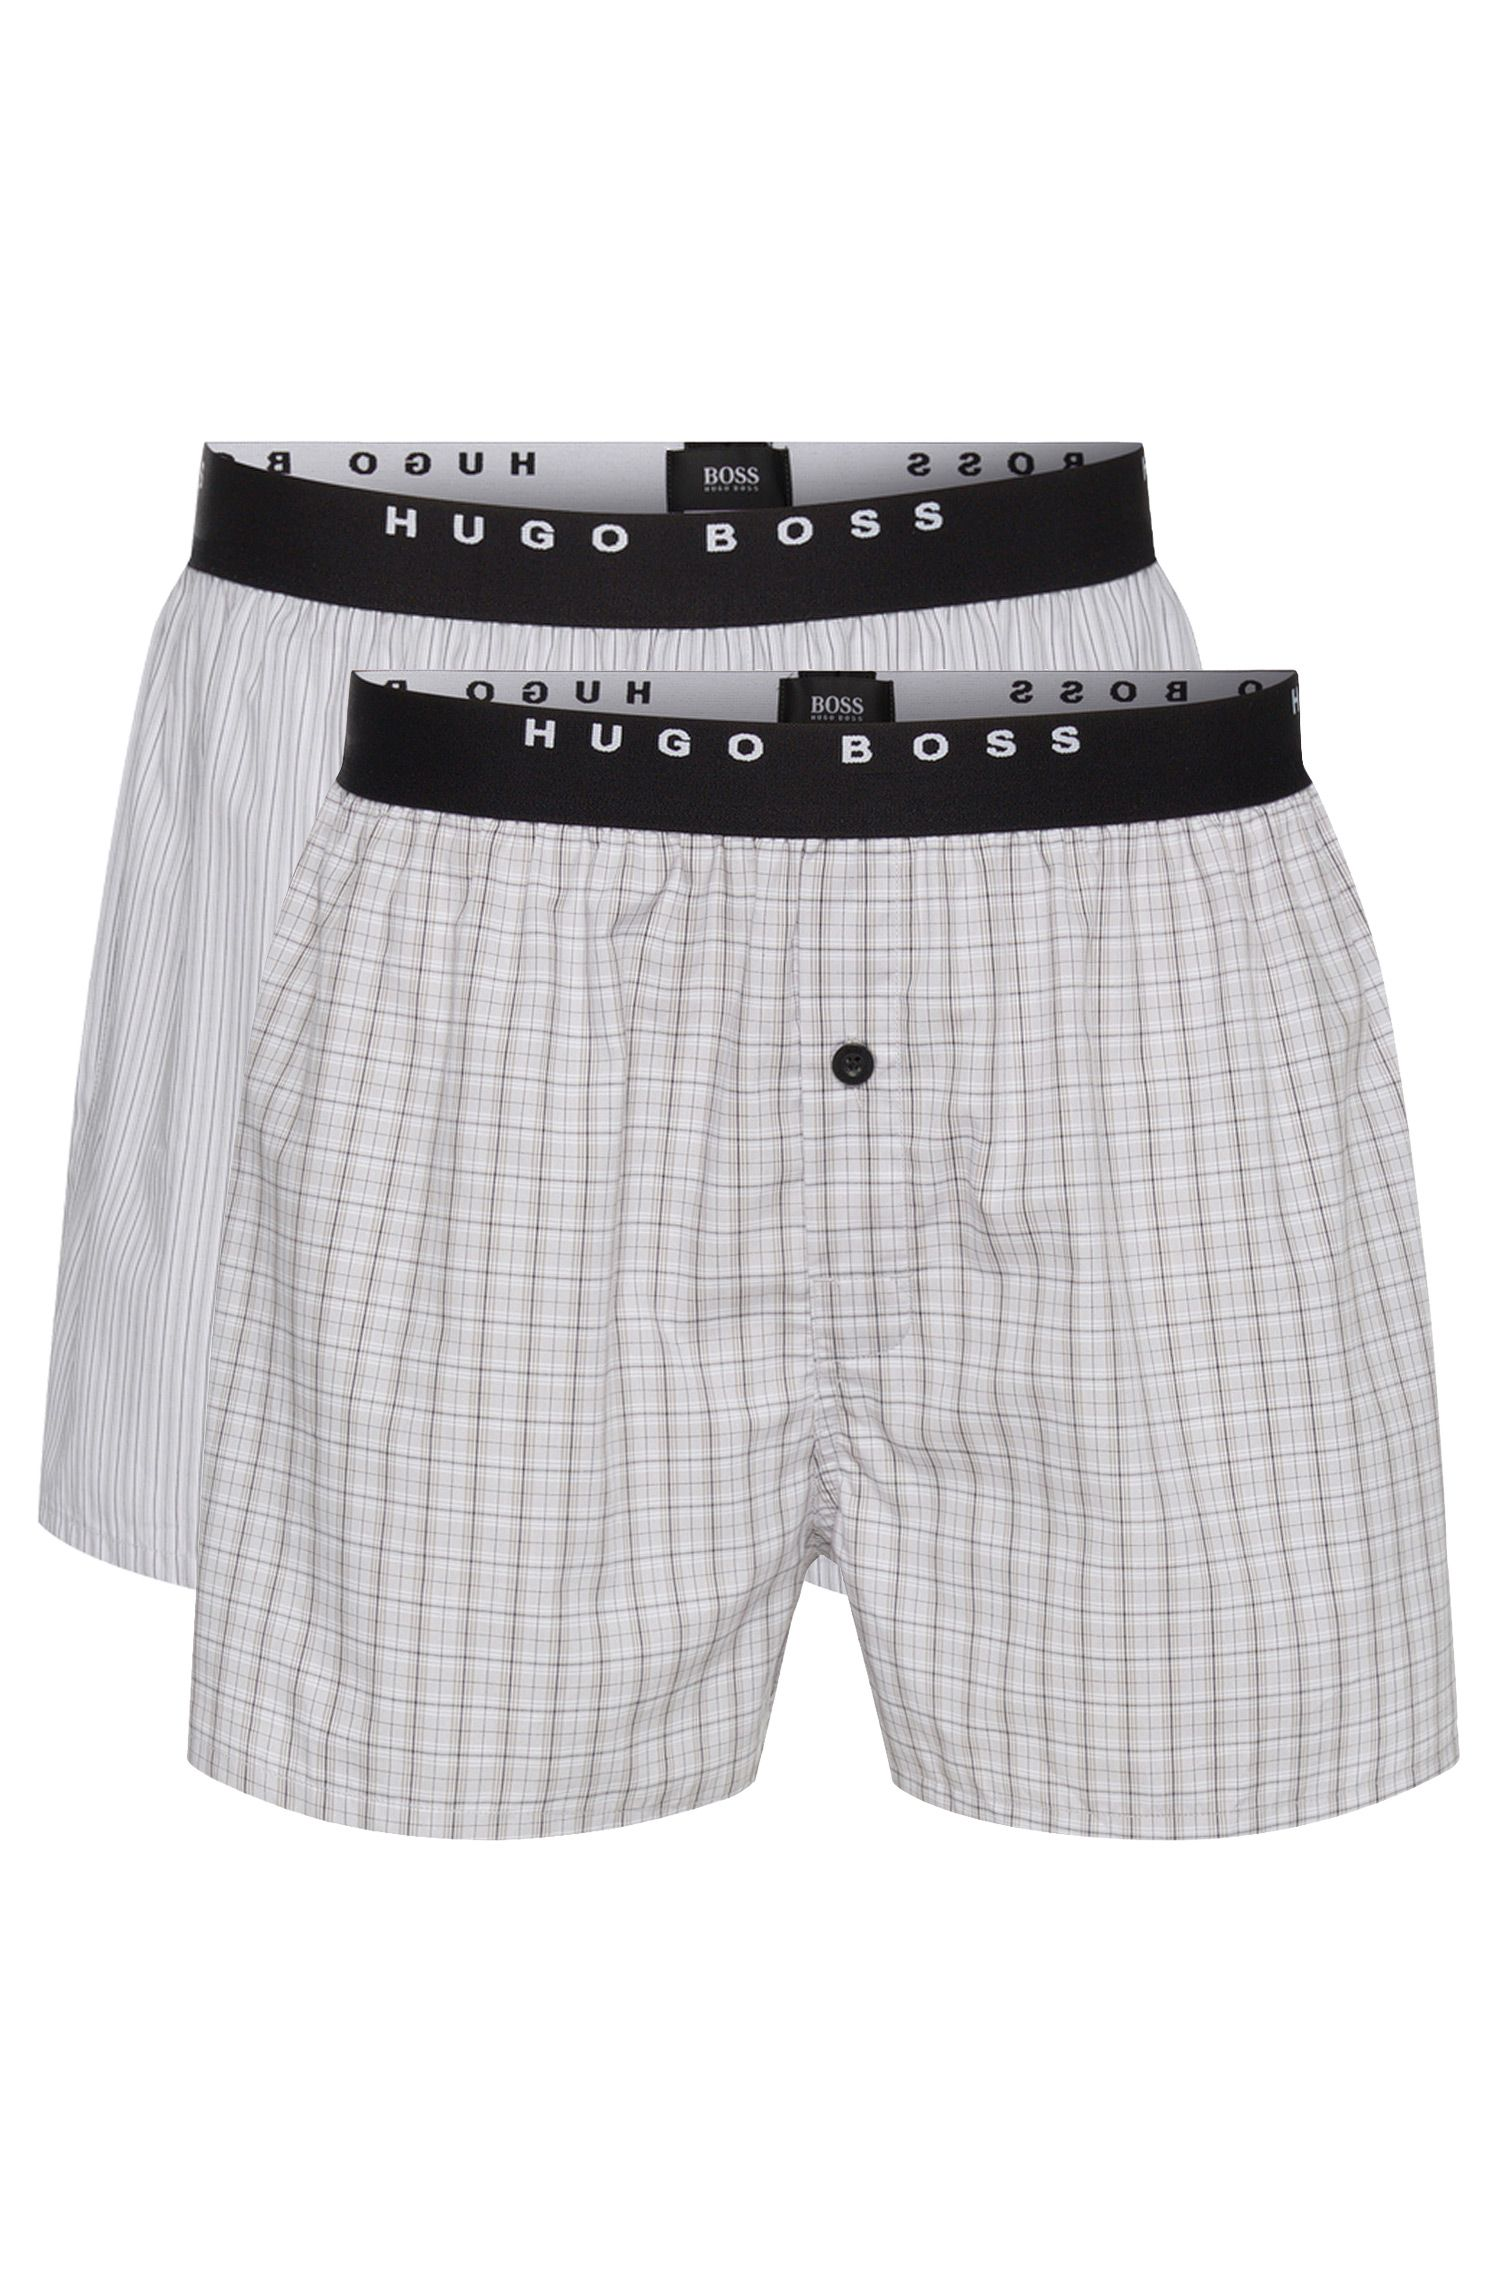 Double pack of boxer shorts in cotton poplin